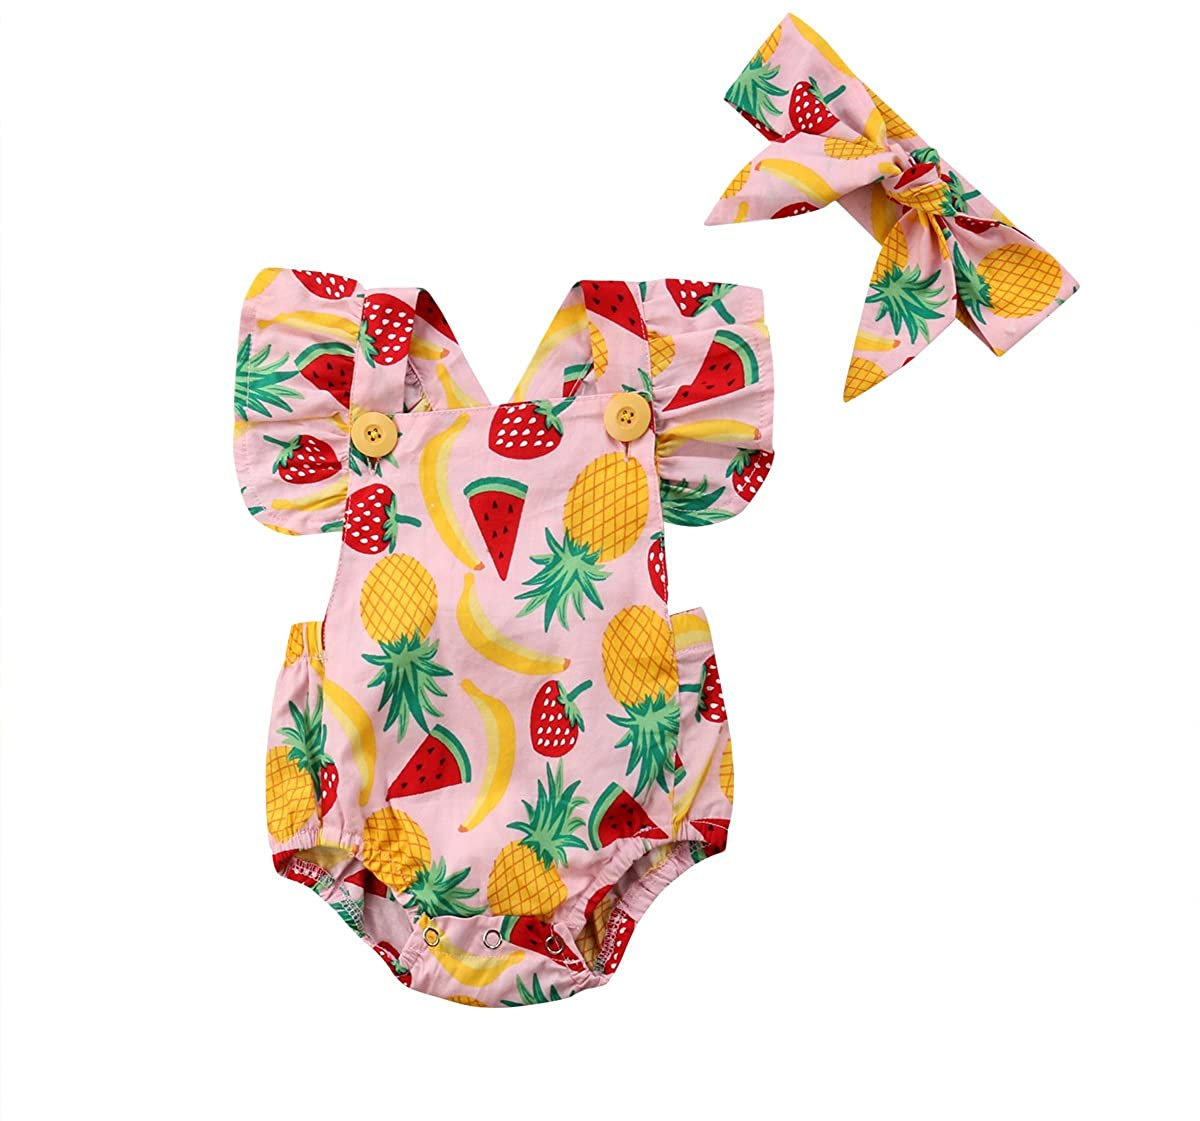 KIDSA Infant Toddler Baby Girl Summer Fruits Romper Outfits Backless Ruffles Bodysuit Jumpsuit Clothes with Headband